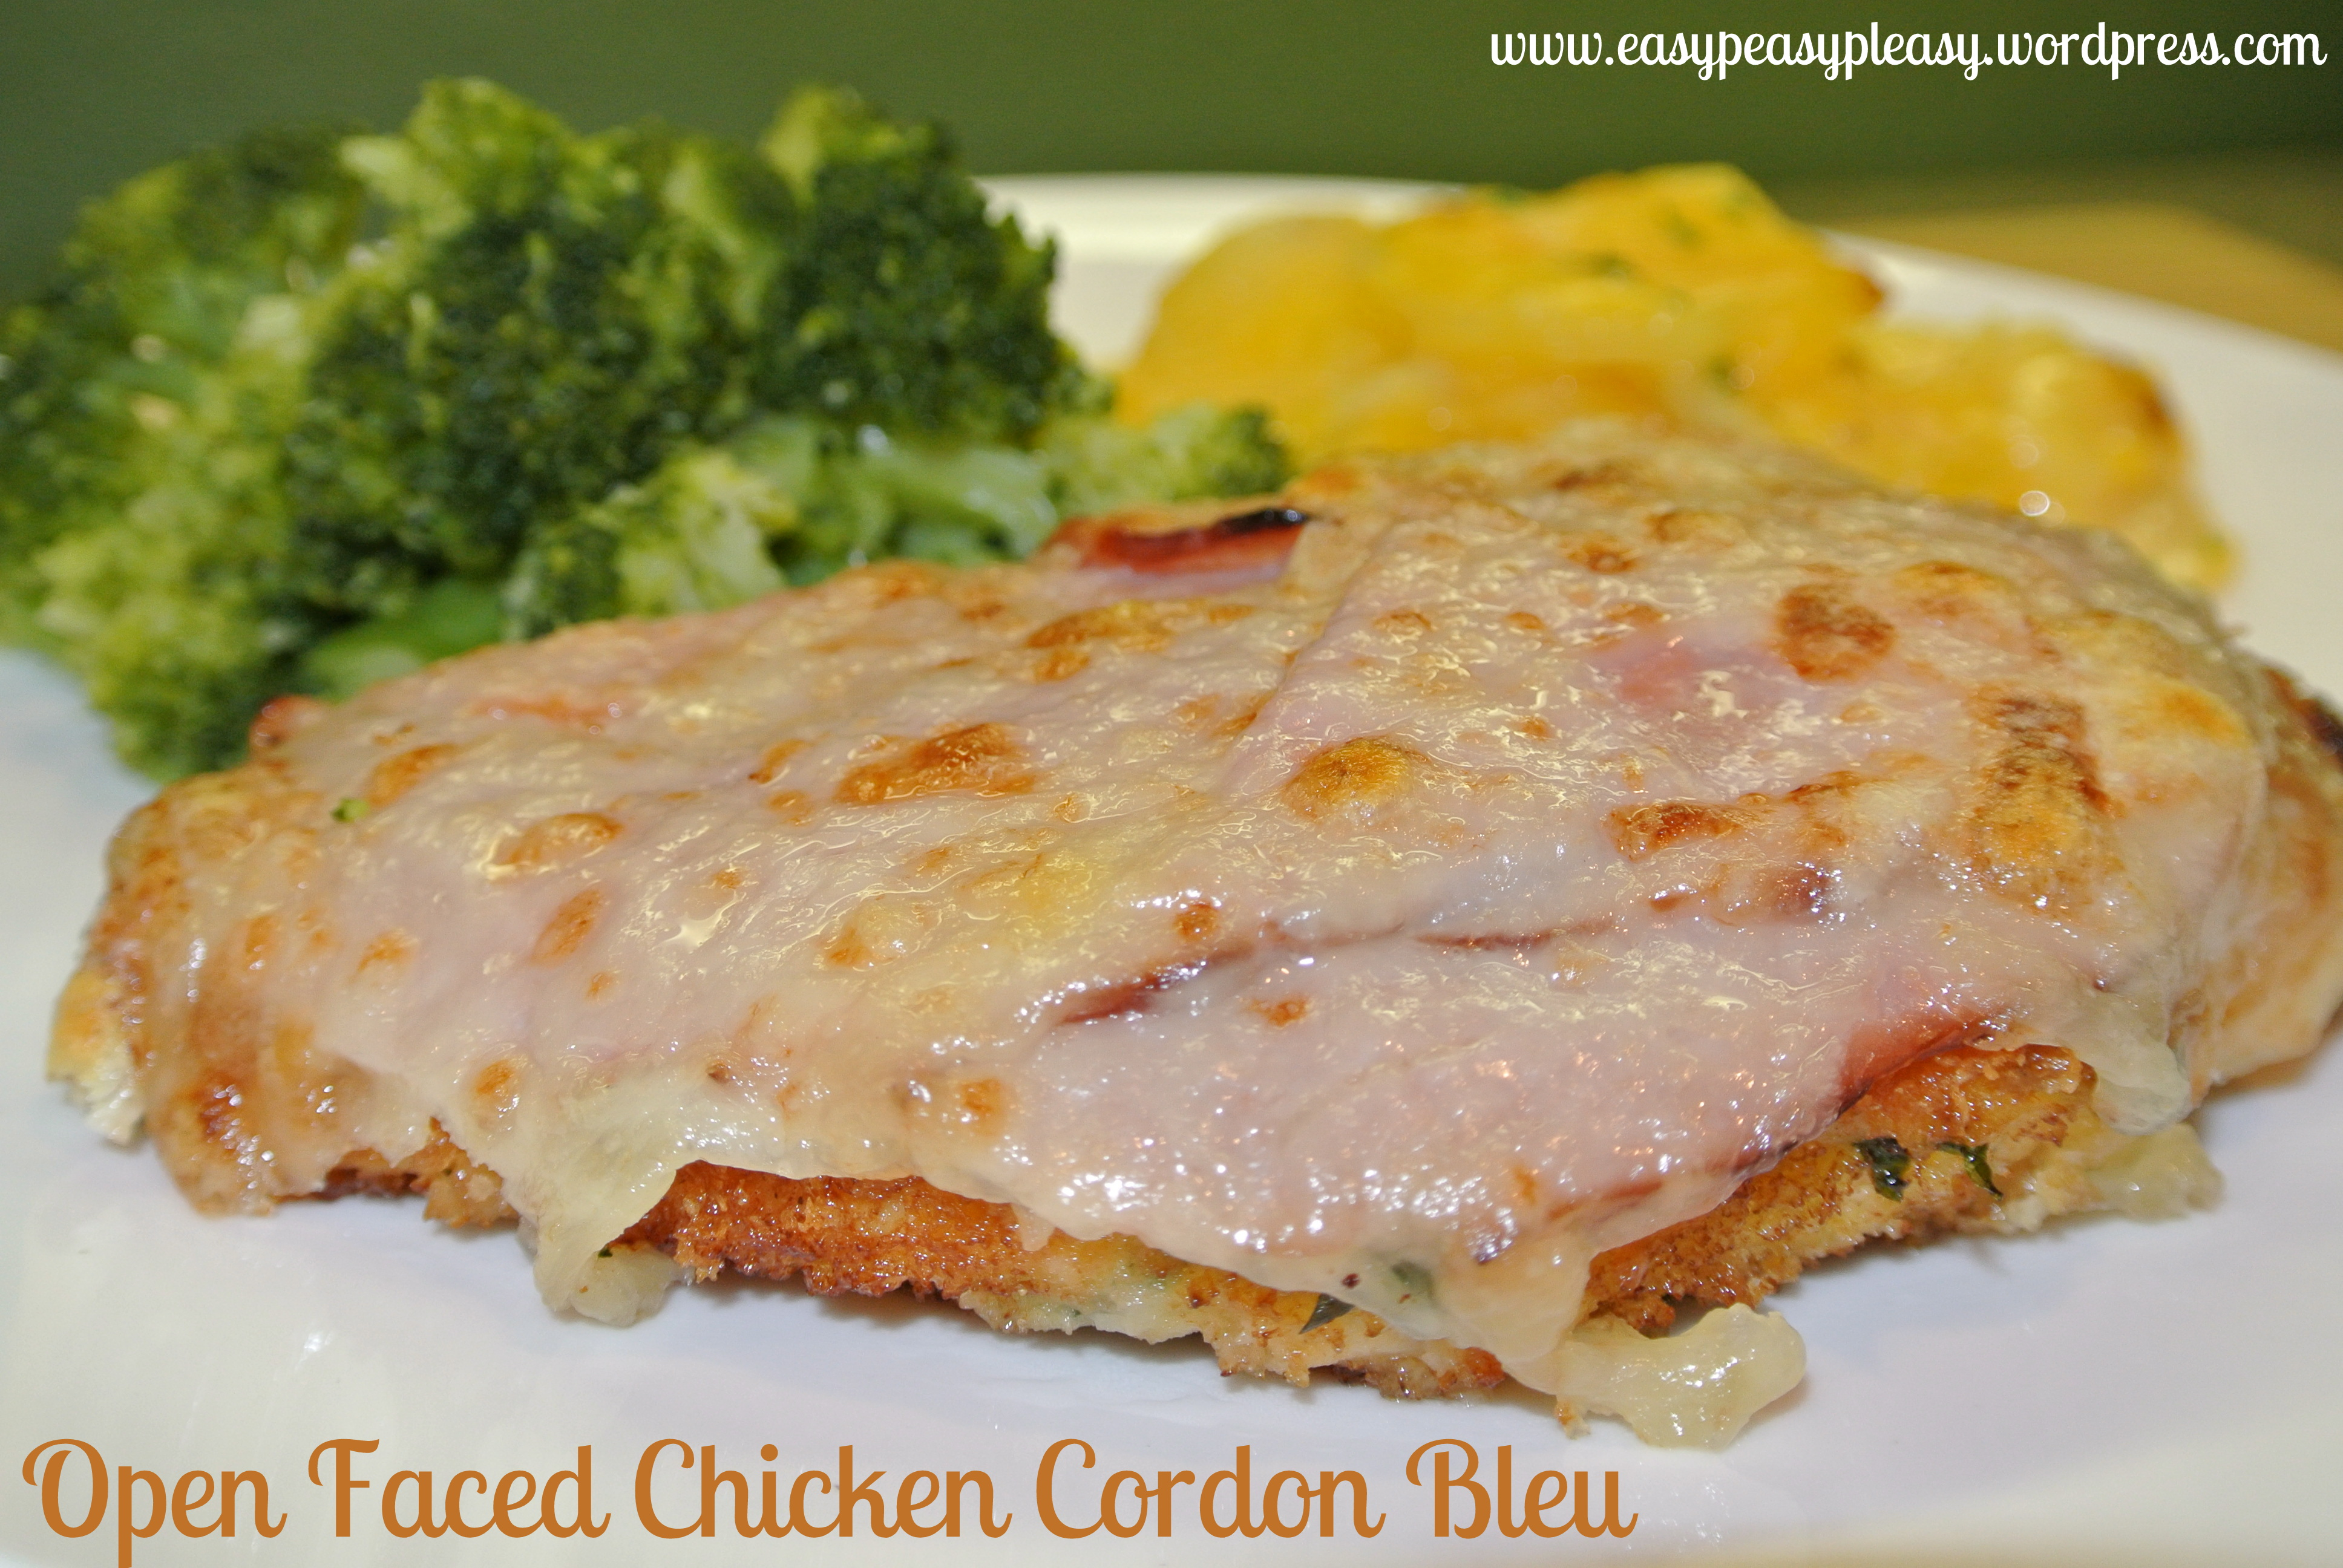 Chicken Cordon Bleu Redo at www.easypeasypleasy.wordpress.com